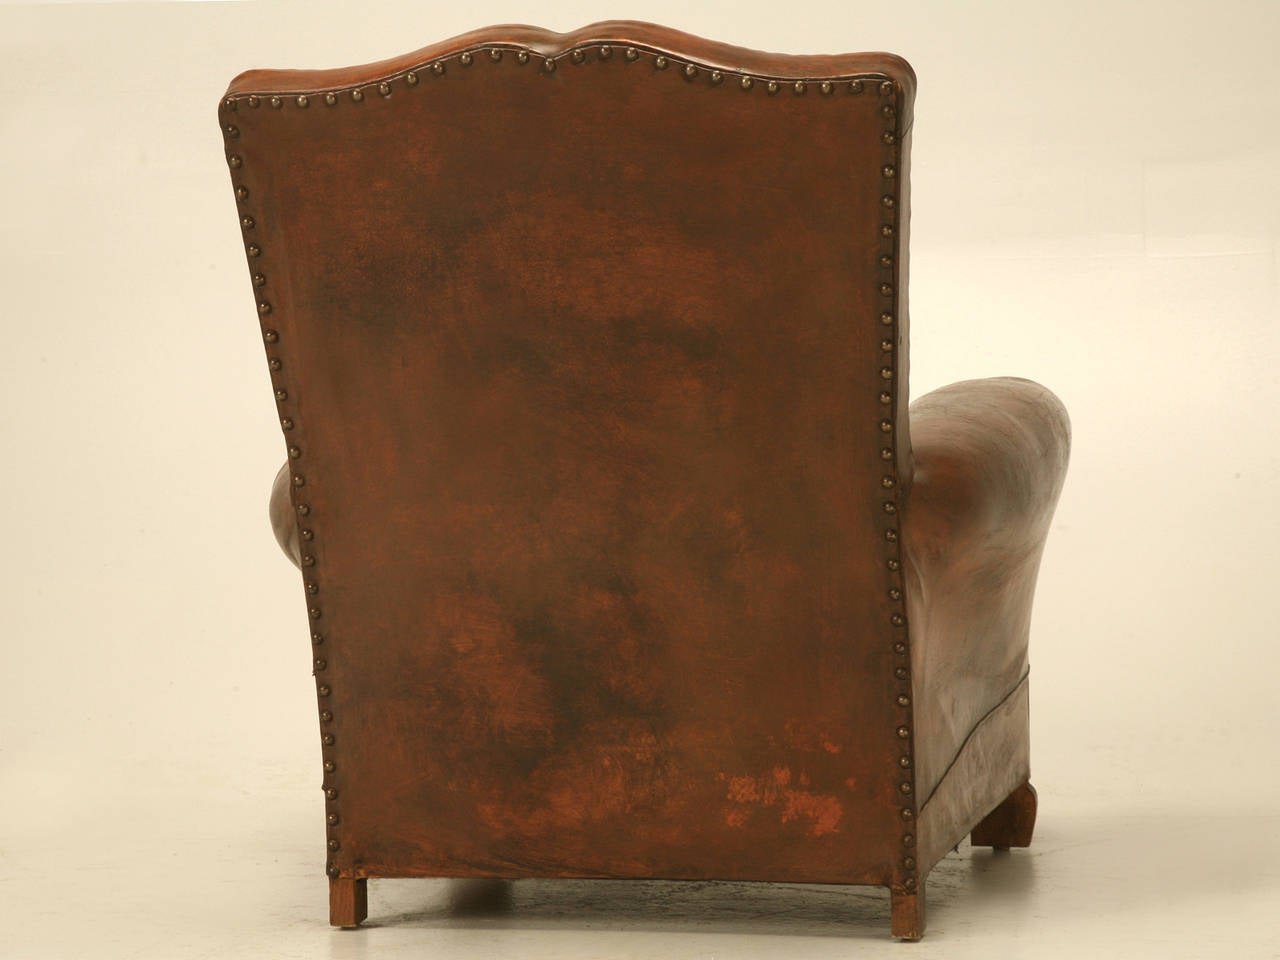 art deco club chairs leather mid century modern accent chair french circa 1930s image 10